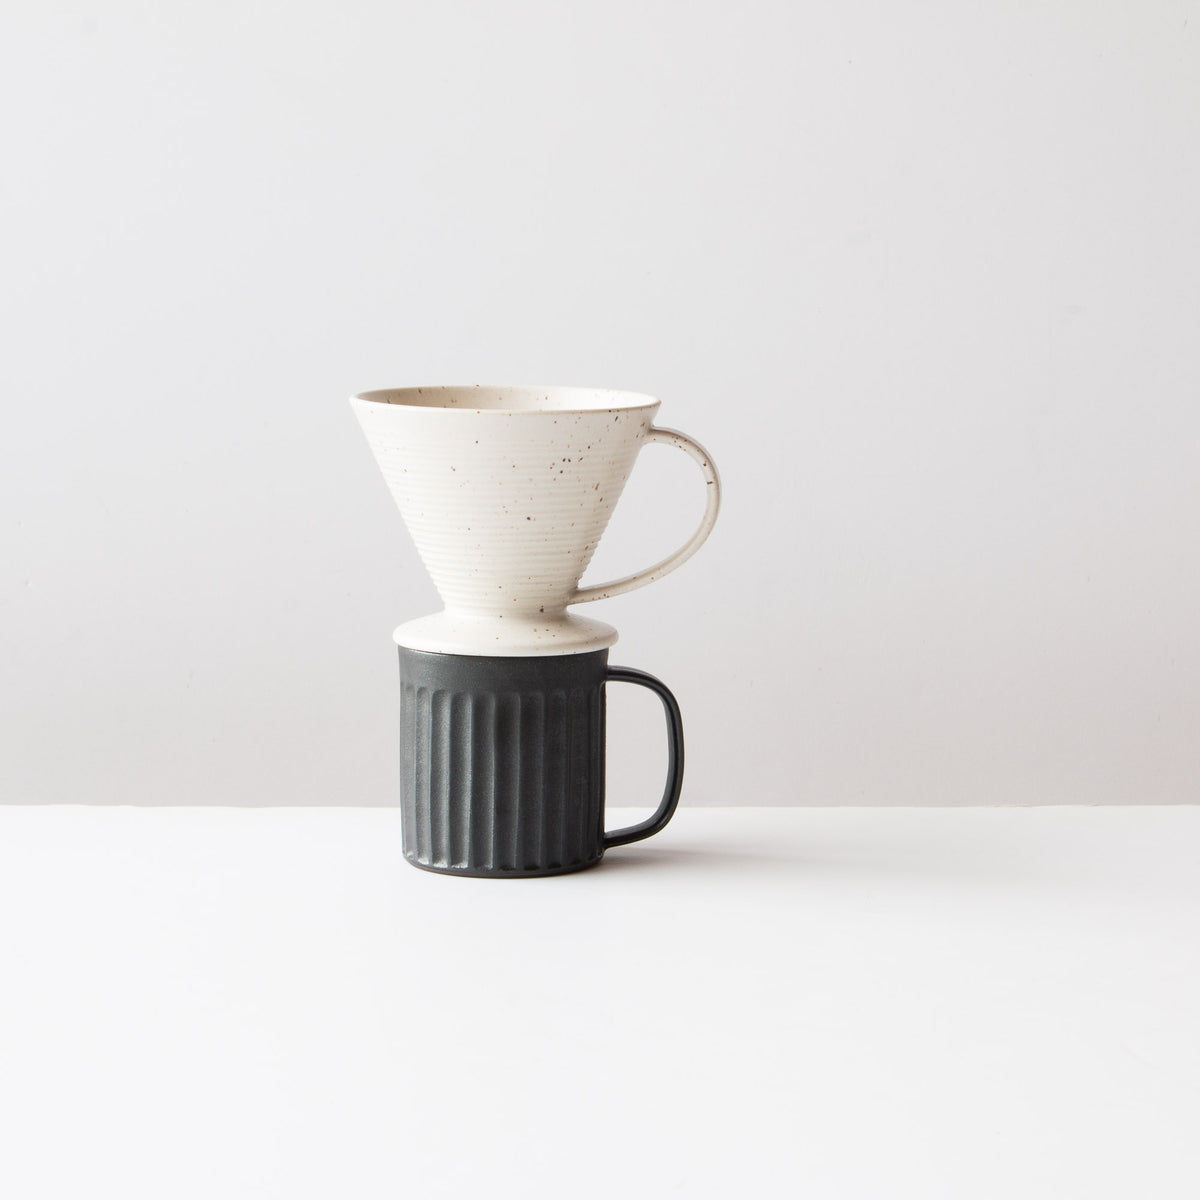 Speckled Off-White - Handmade Ceramic Pour-Over Coffee Dripper Shown with Coffee Mug - Sold by Chic & Basta